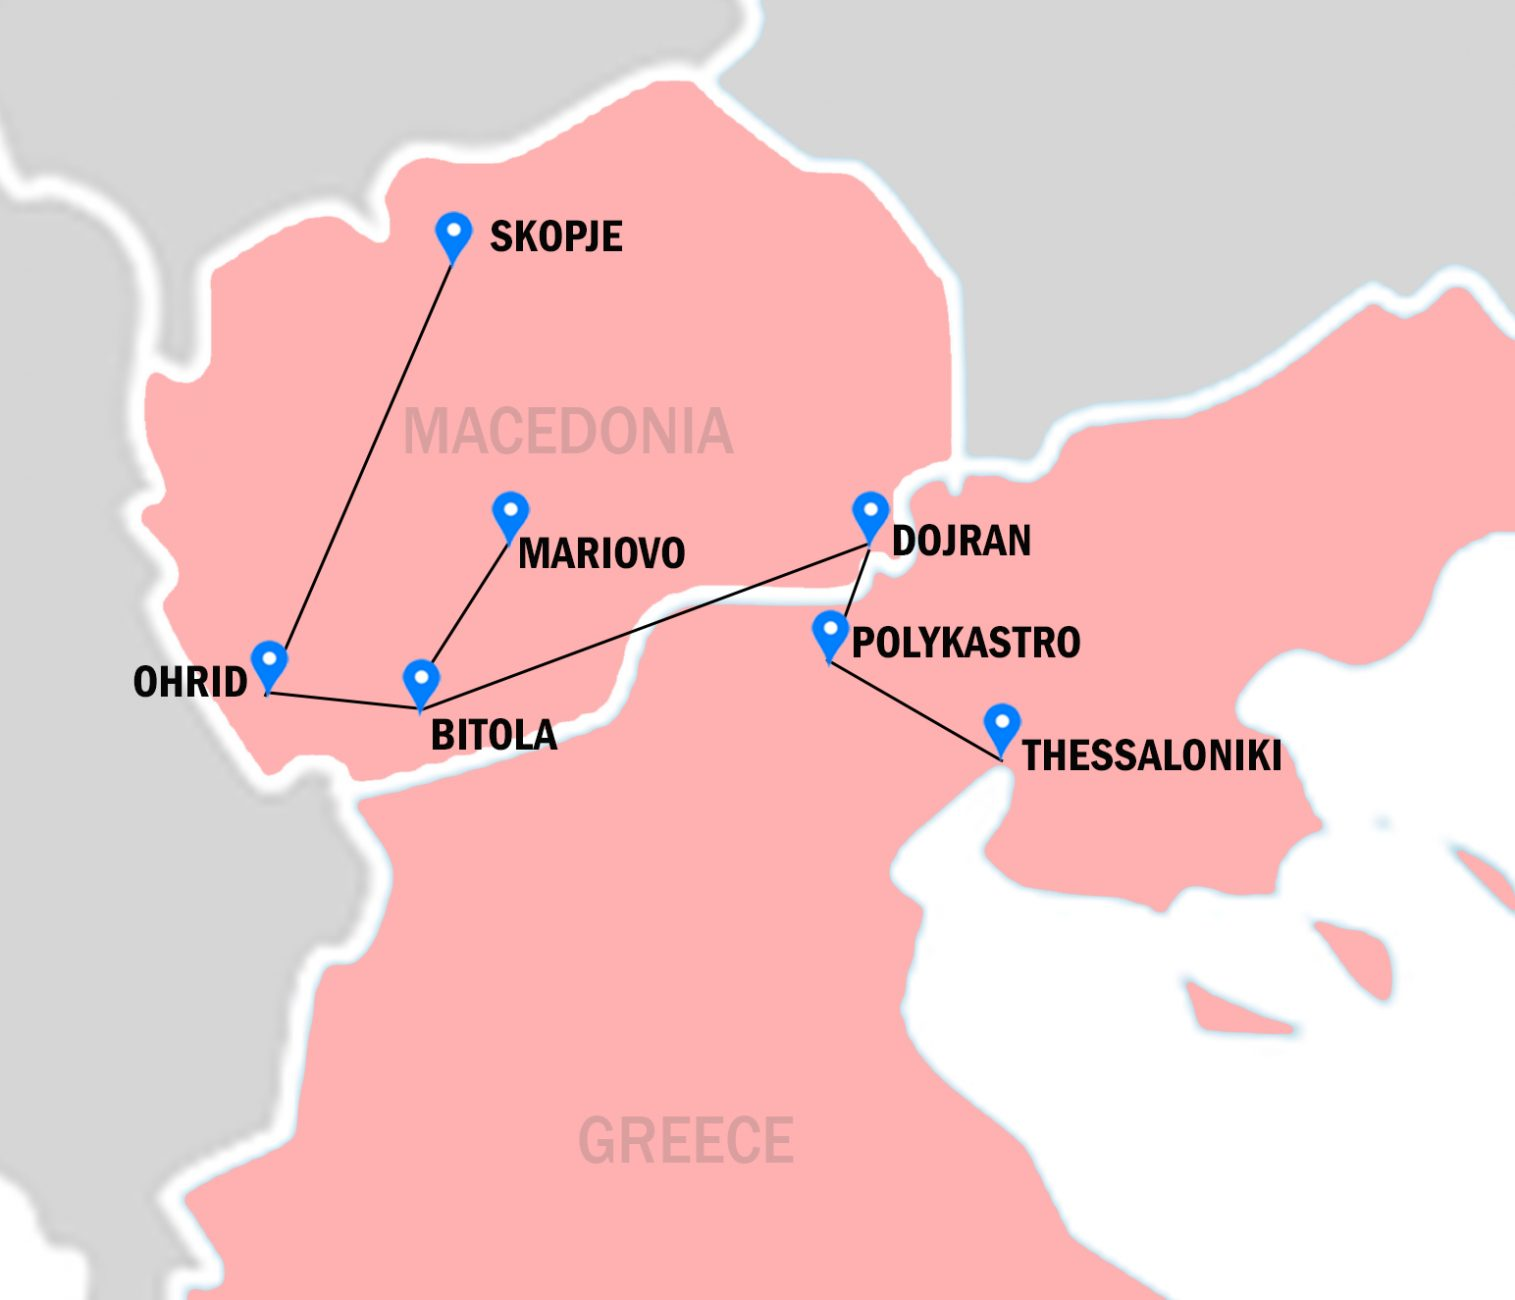 Map of Greece and Macedonia colored in pink, places and cities visited by World War One marked by pins